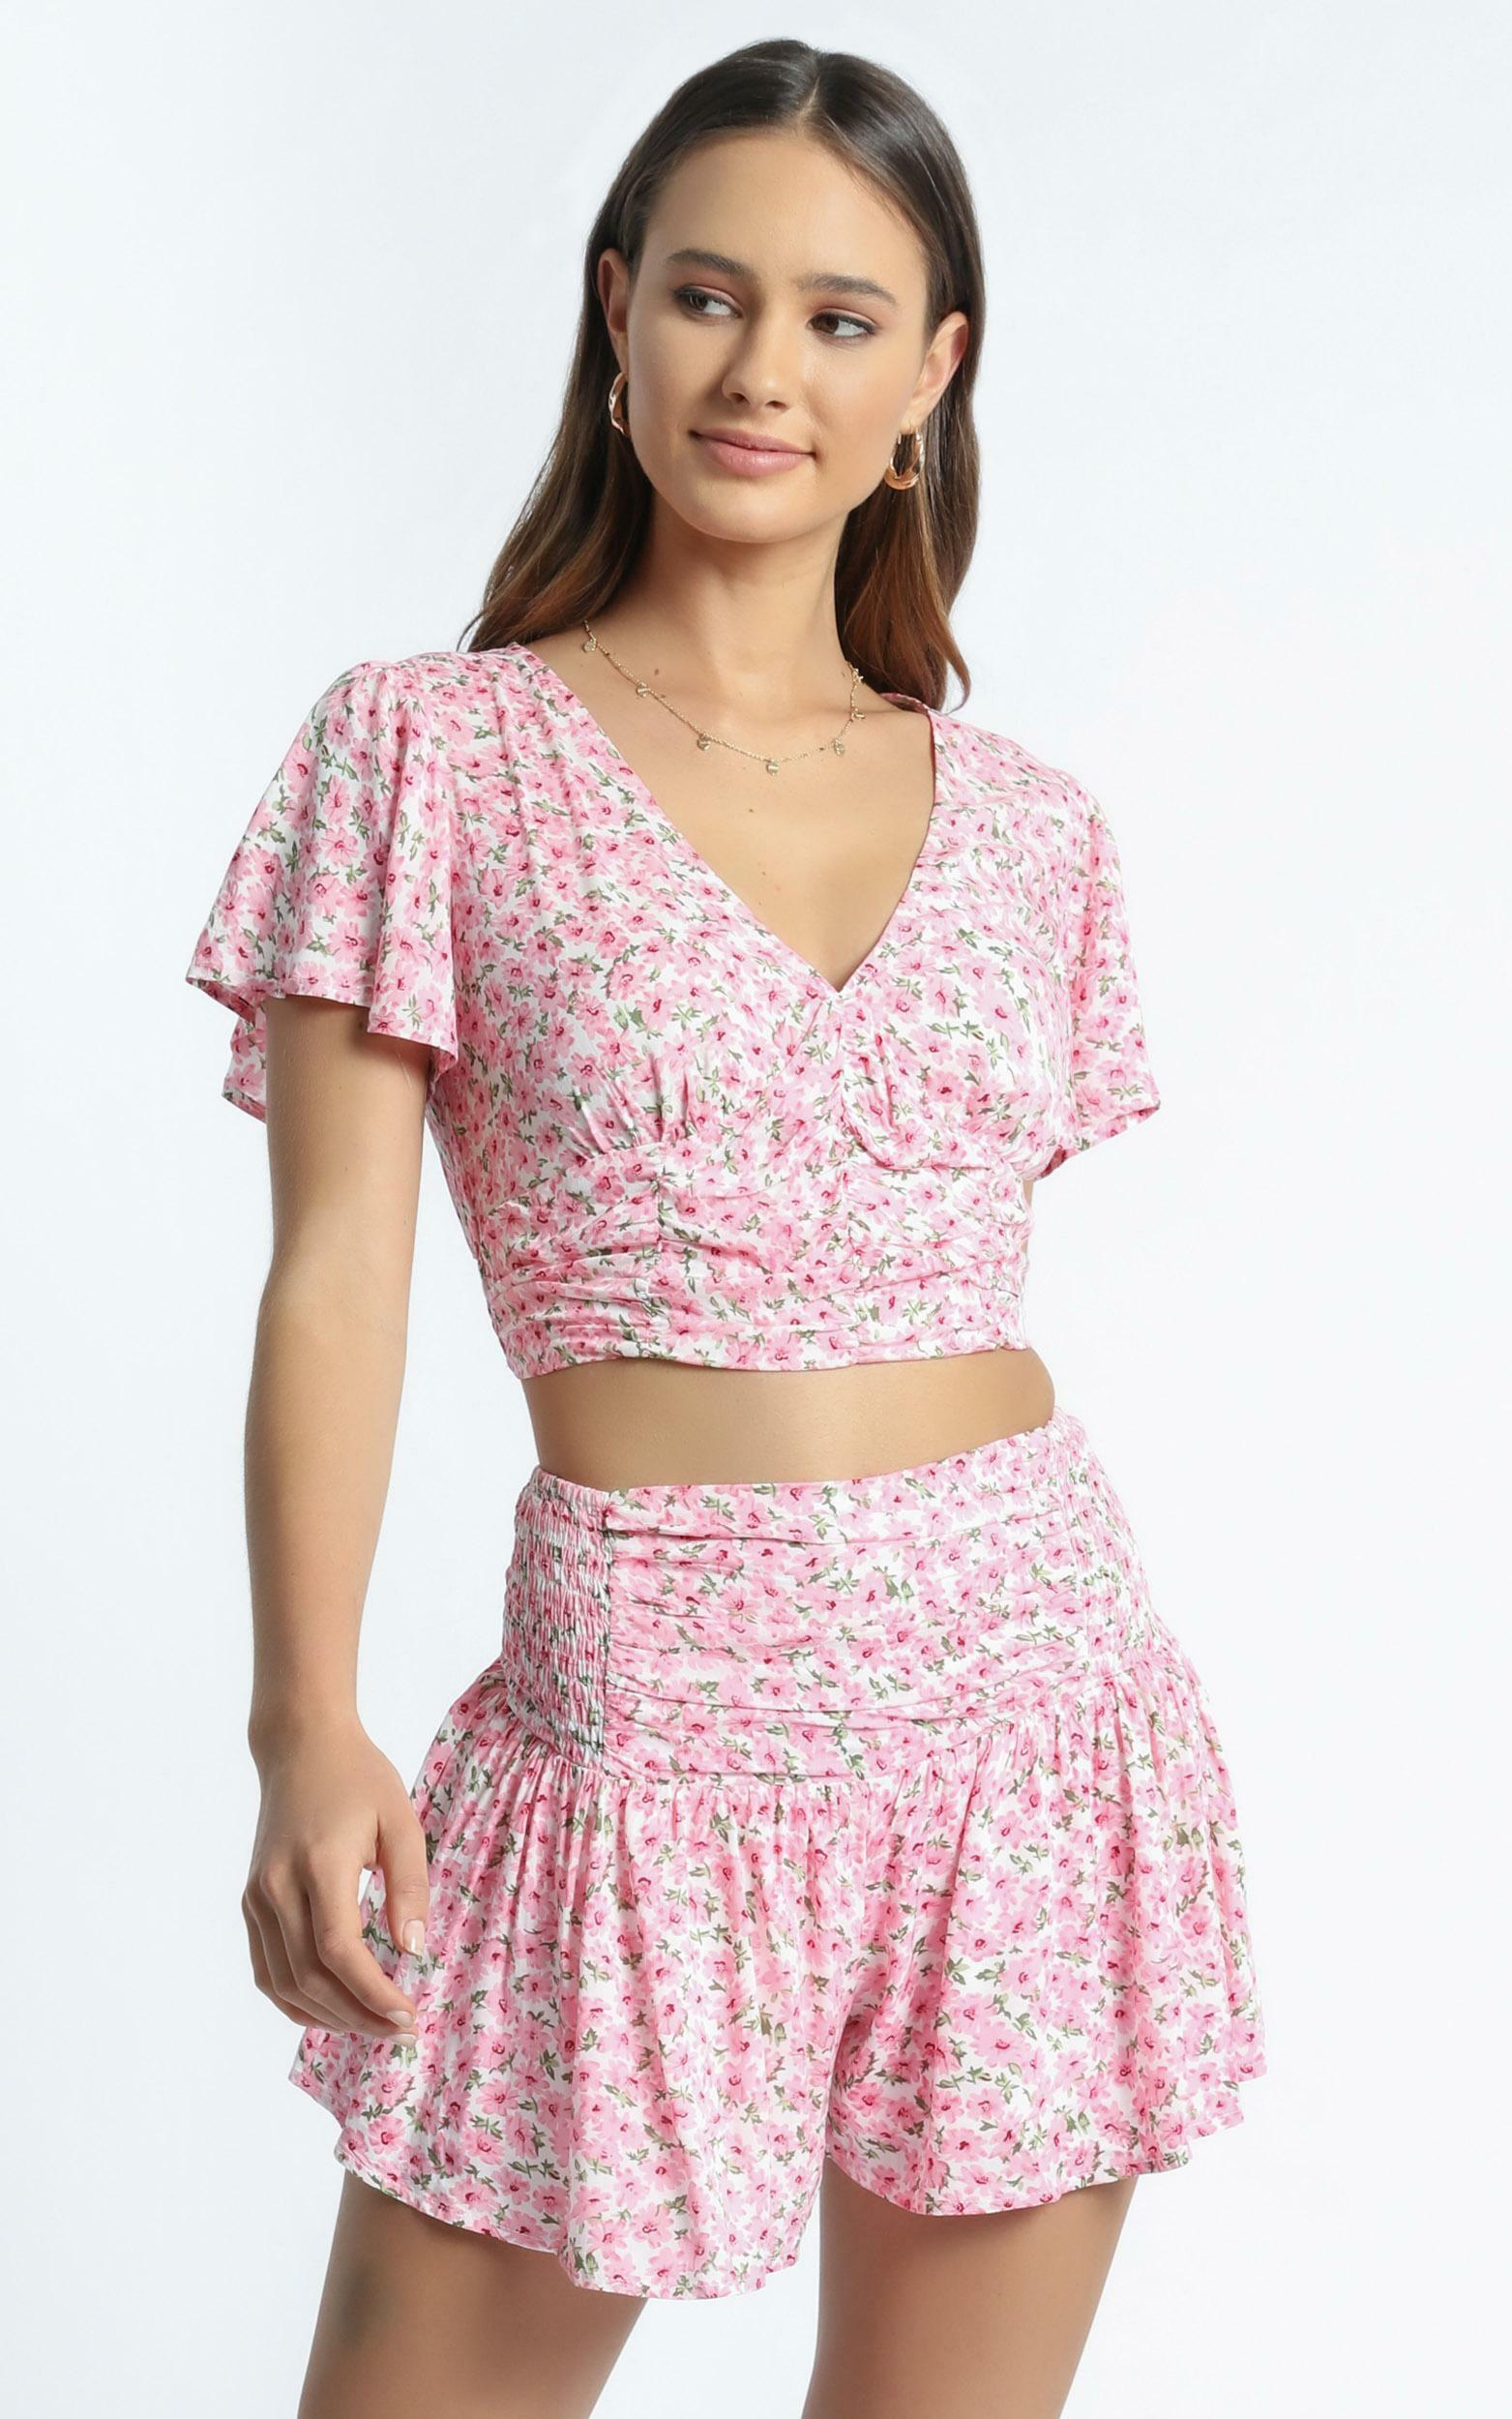 Candy Two Piece Set In Pink Floral - 6 (XS), PNK29, hi-res image number null